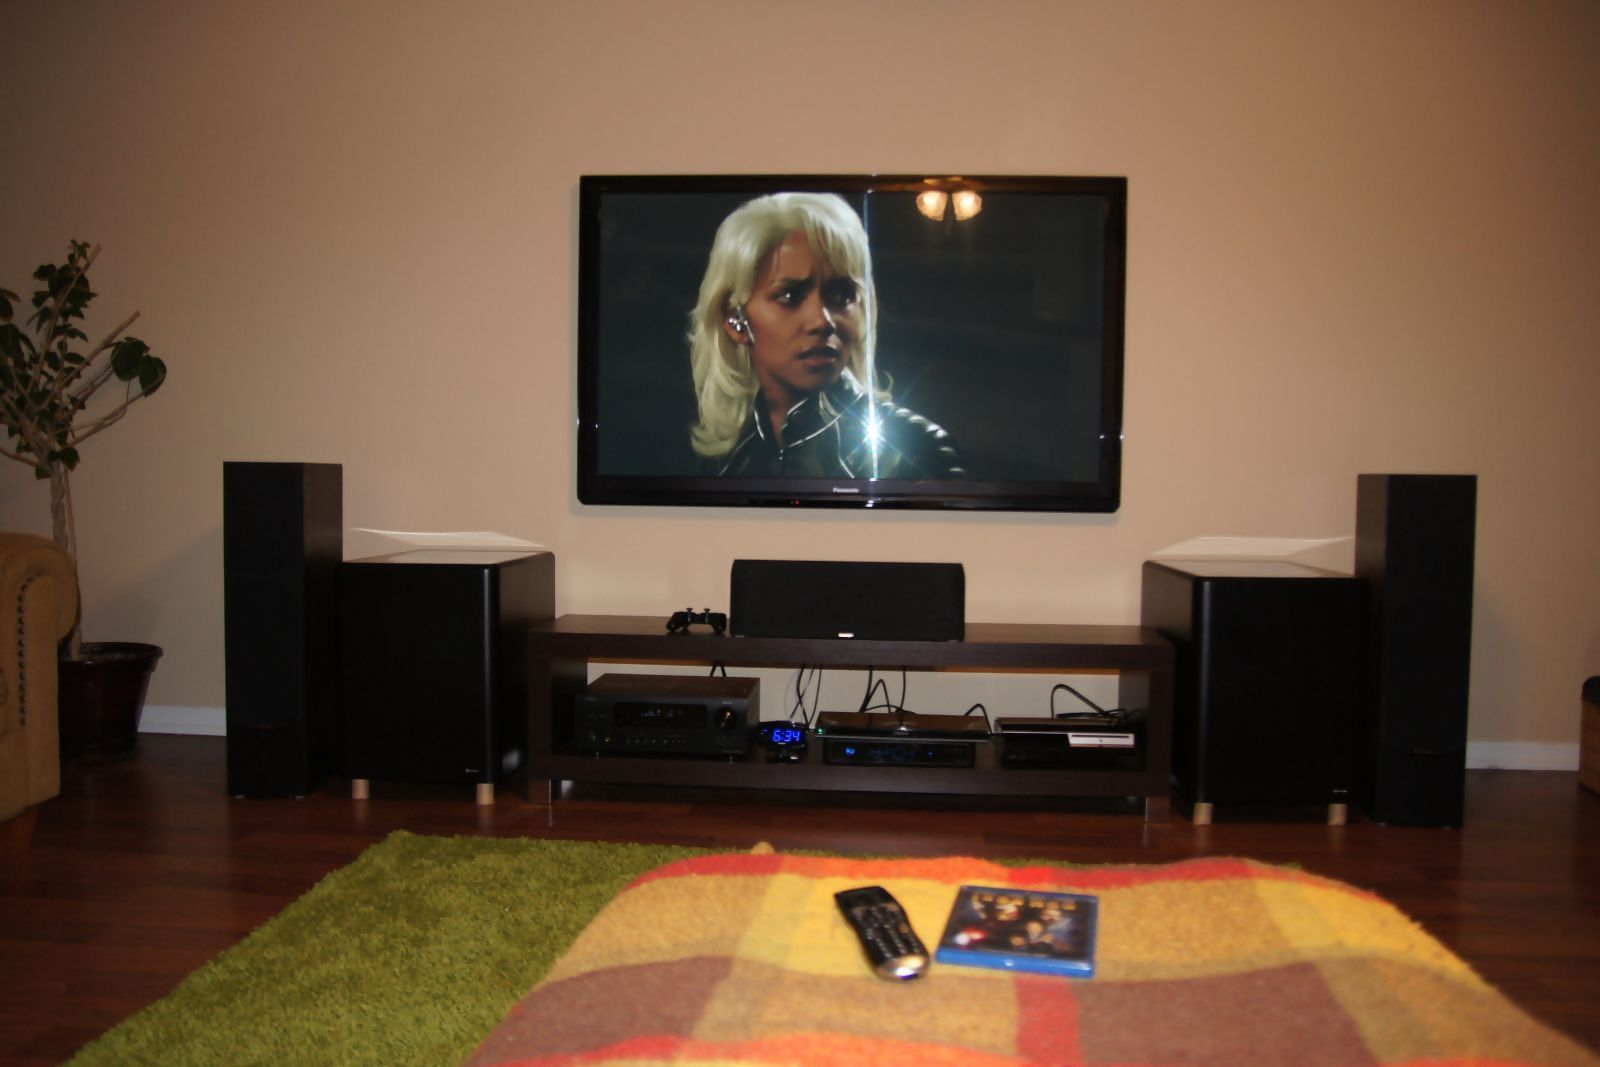 Hjustin S Home Theater Gallery Living Room 11 Photos